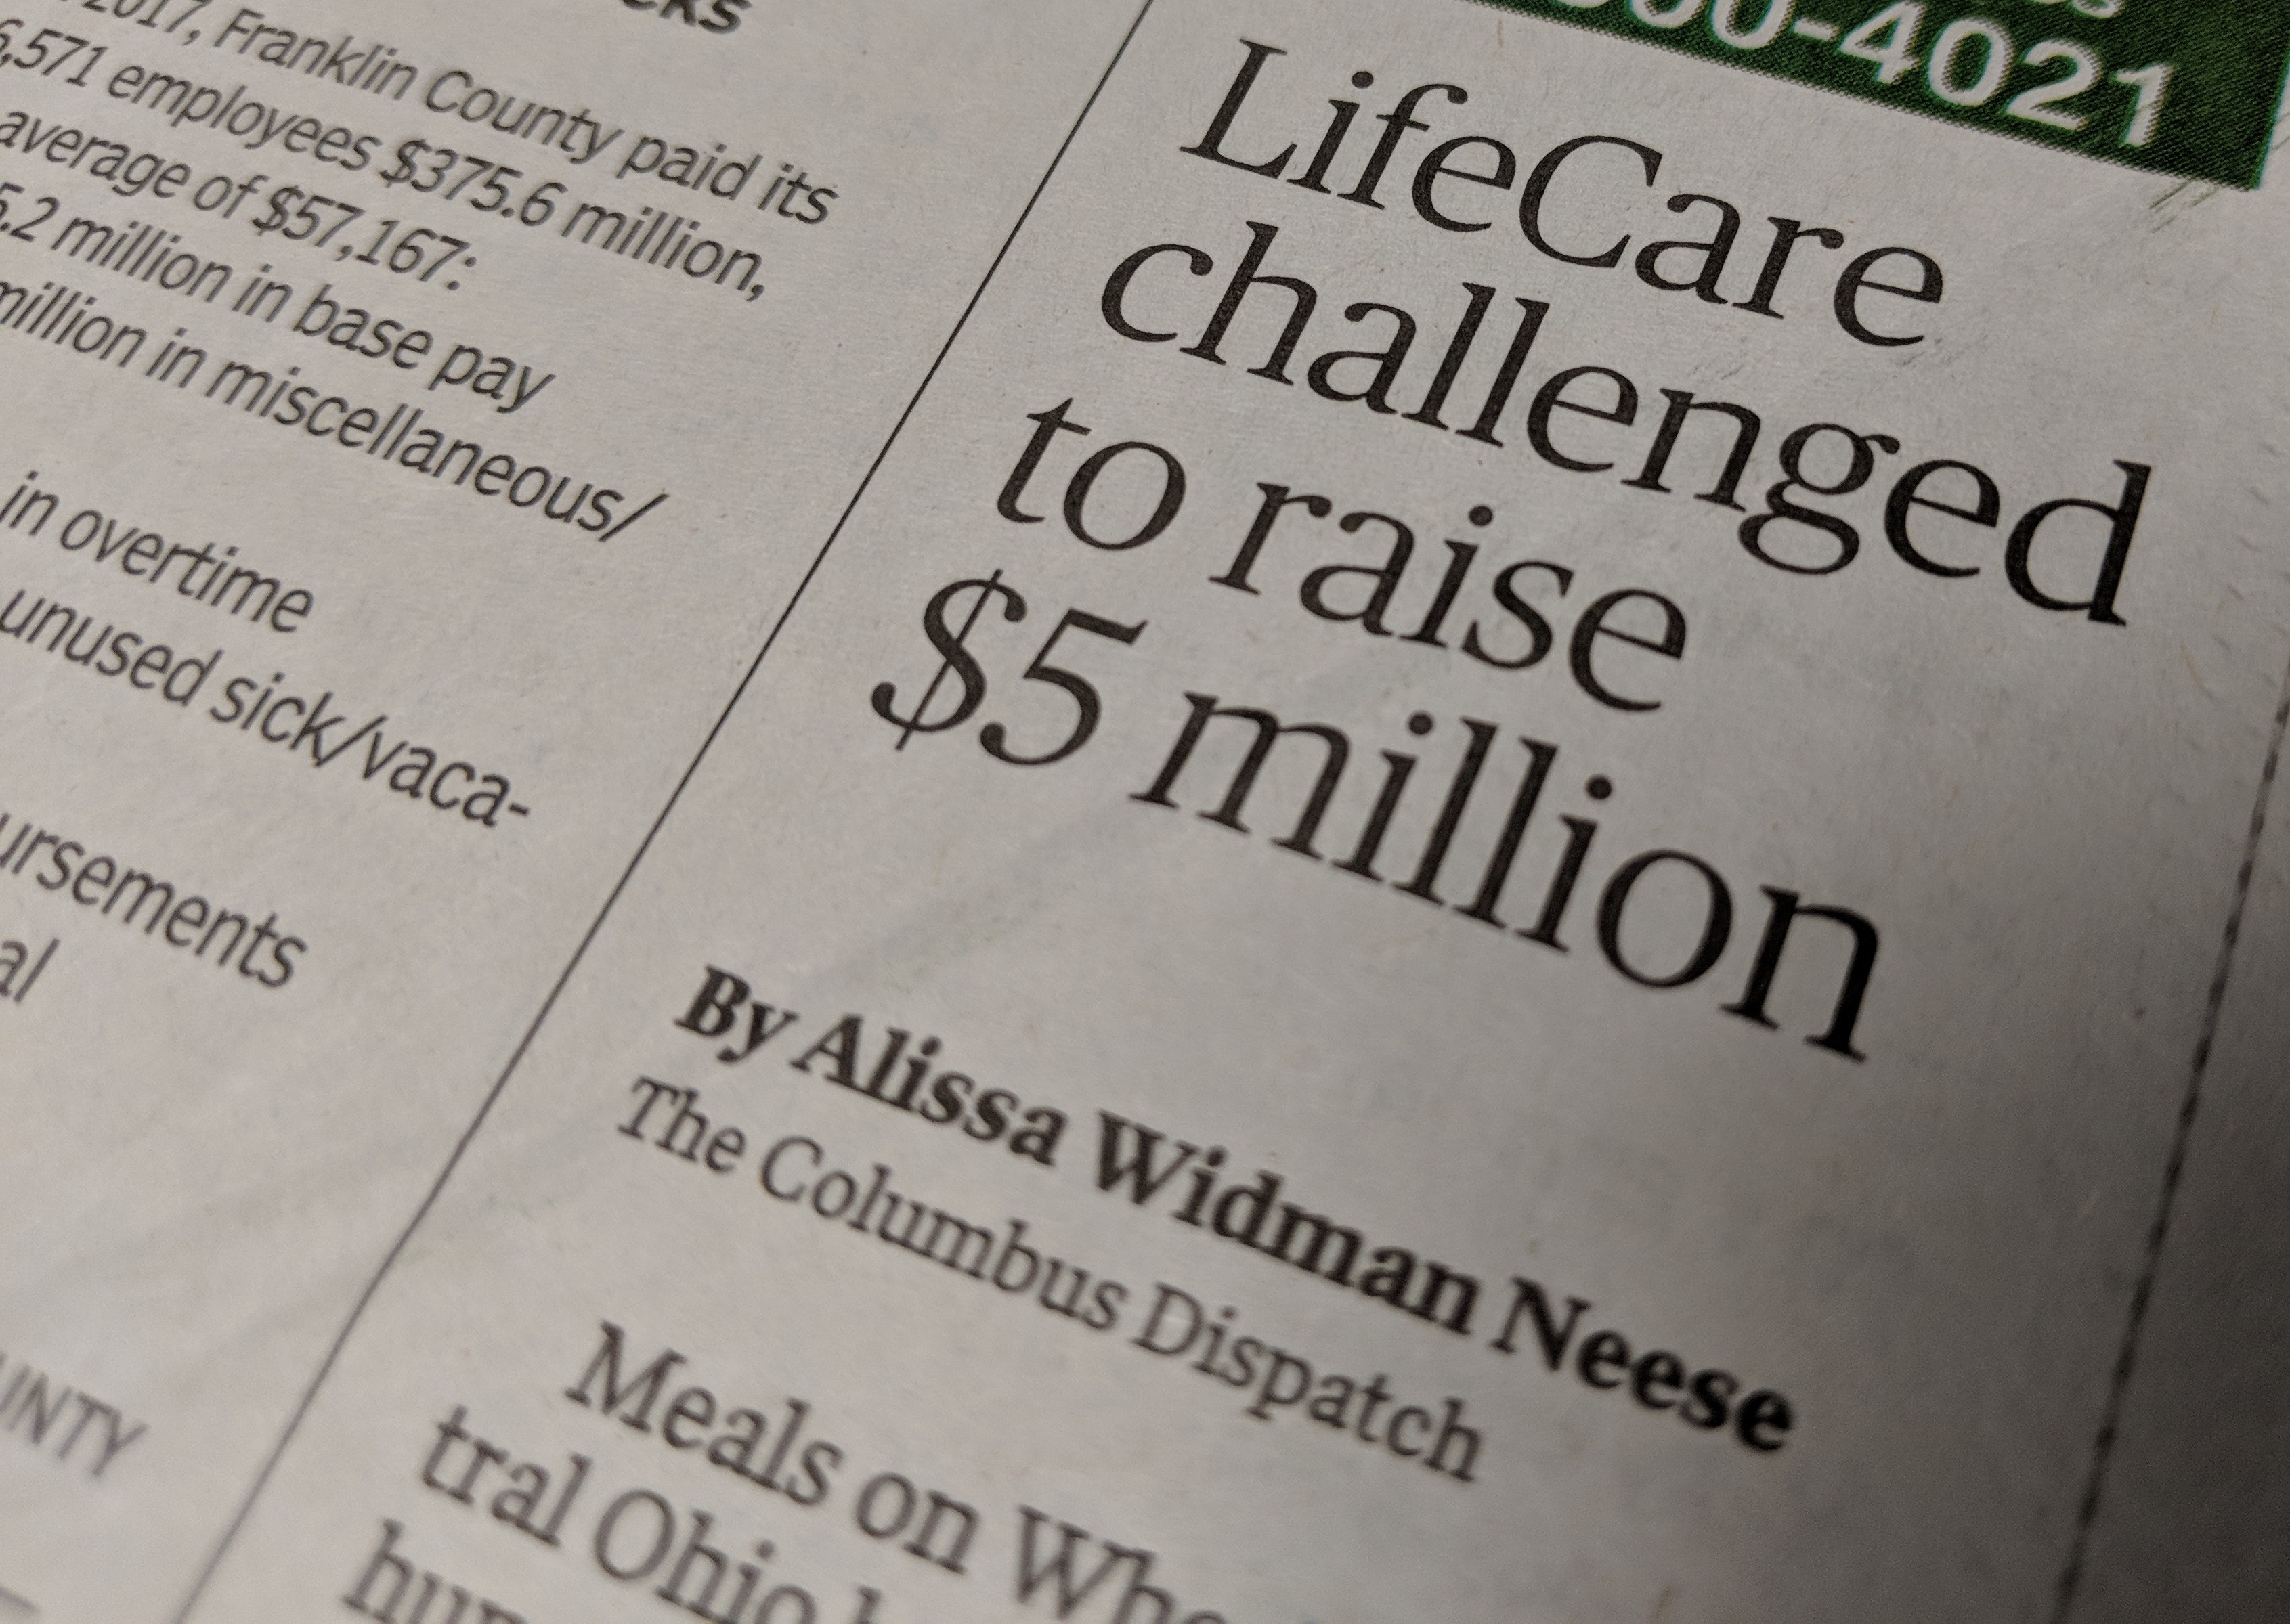 $5 Million Match Campaign Featured in The Columbus Dispatch